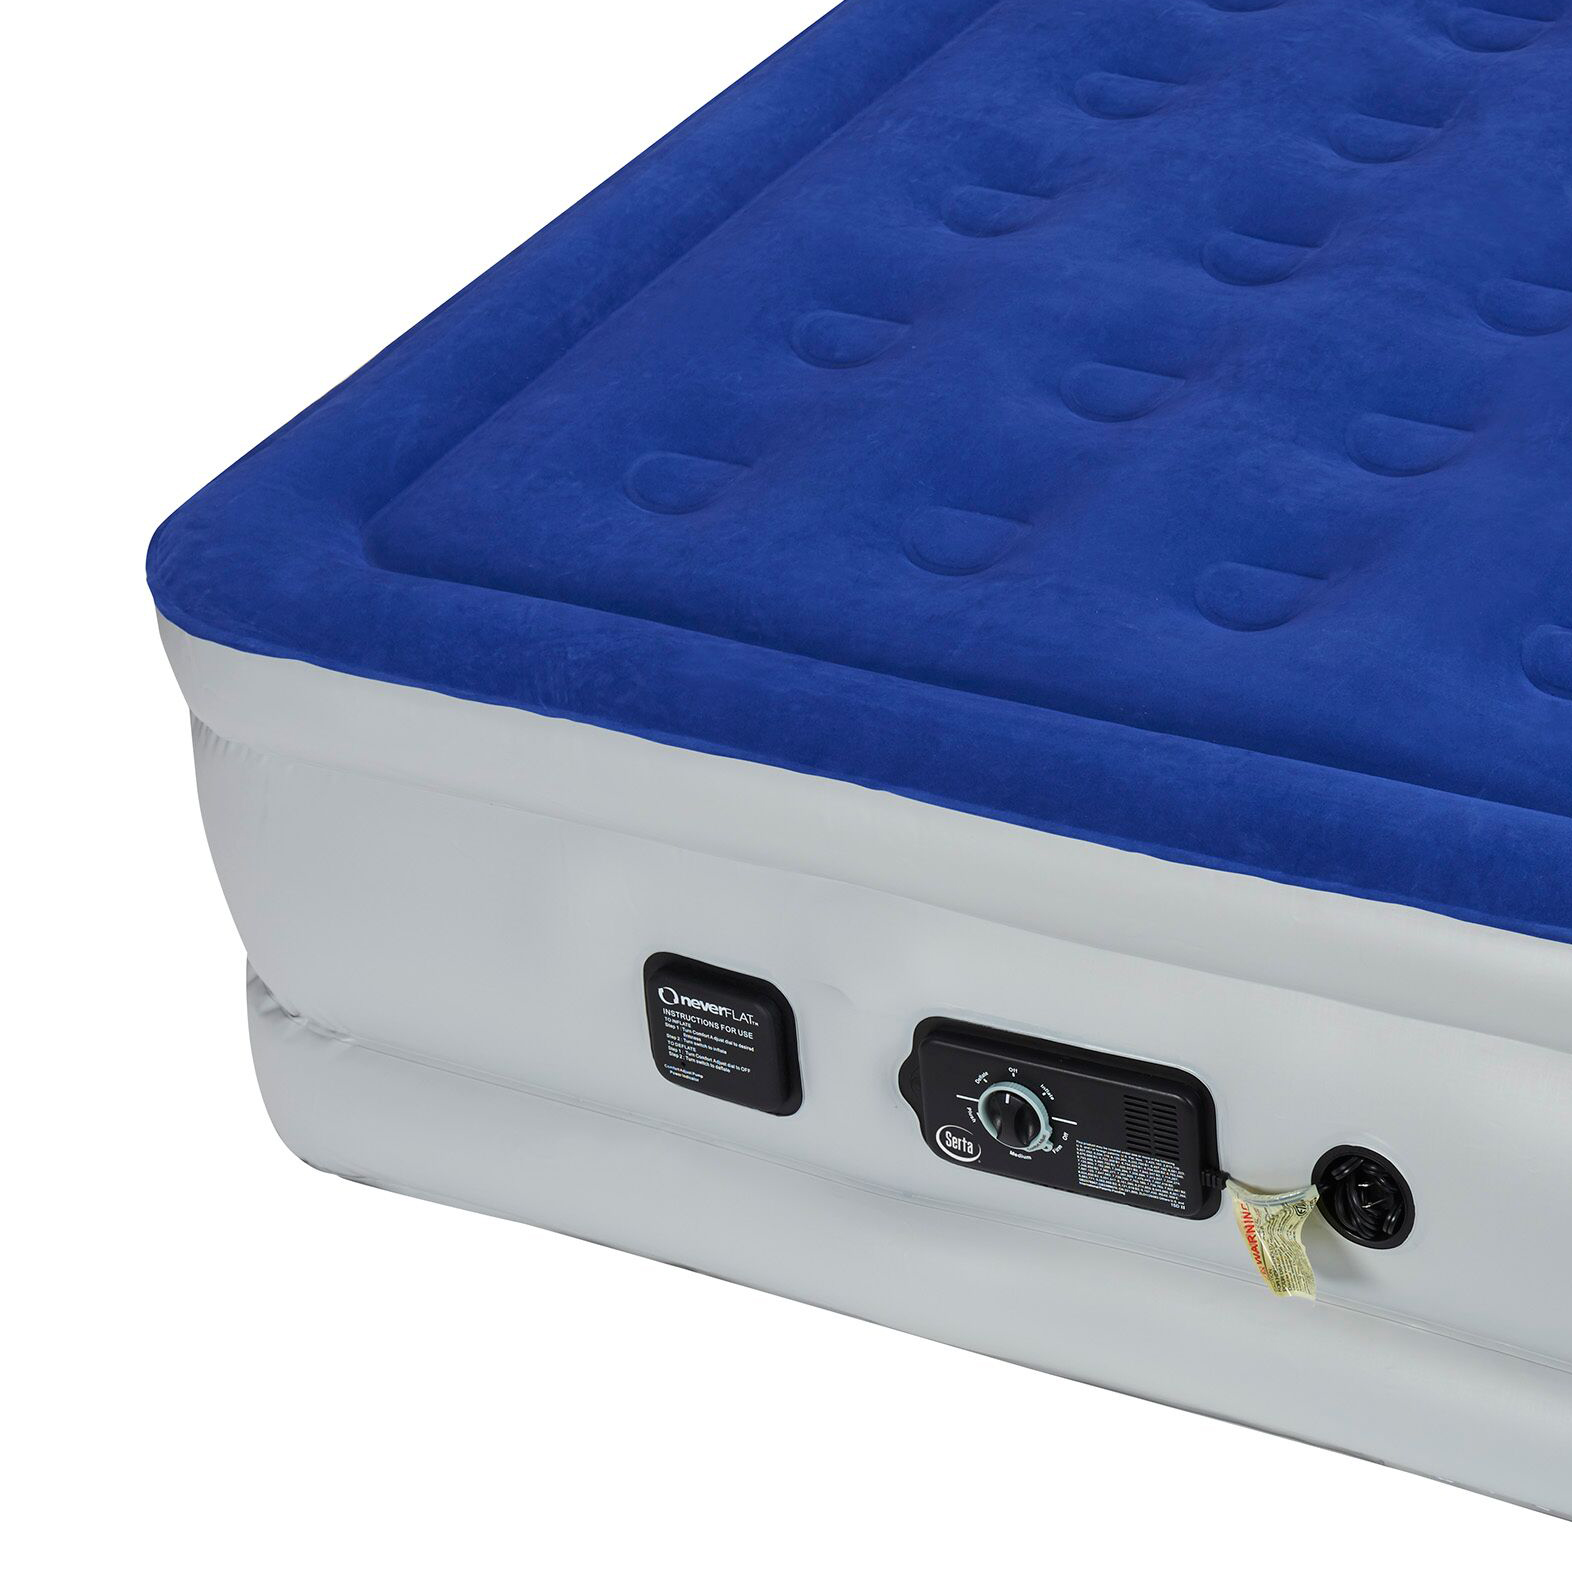 Serta Raised Queen Size Bed Air Mattress With Never Flat